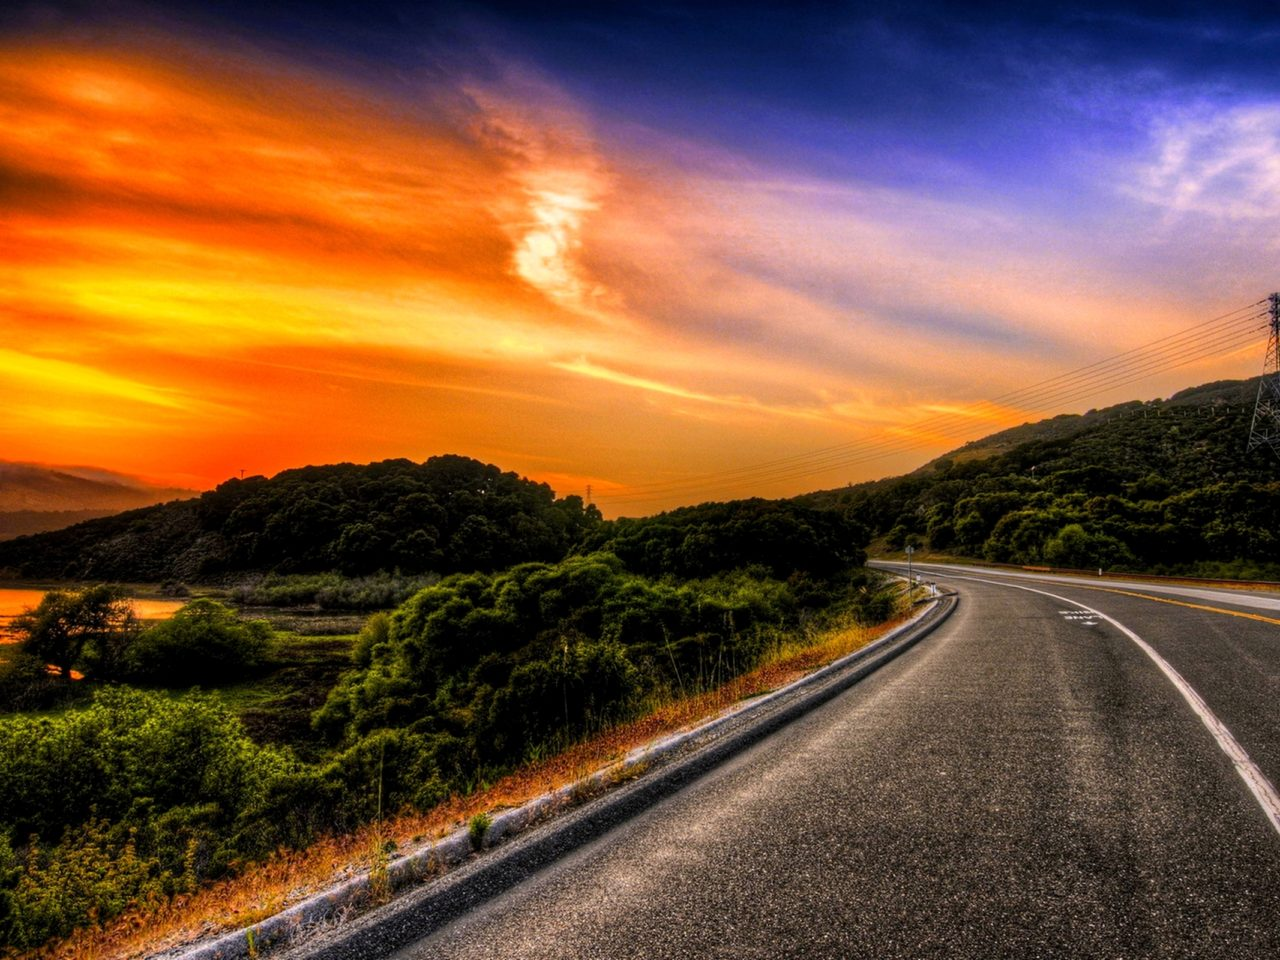 Amazing Wallpapers For Iphone 4 Road To The Horizon 235818 Wallpapers13 Com